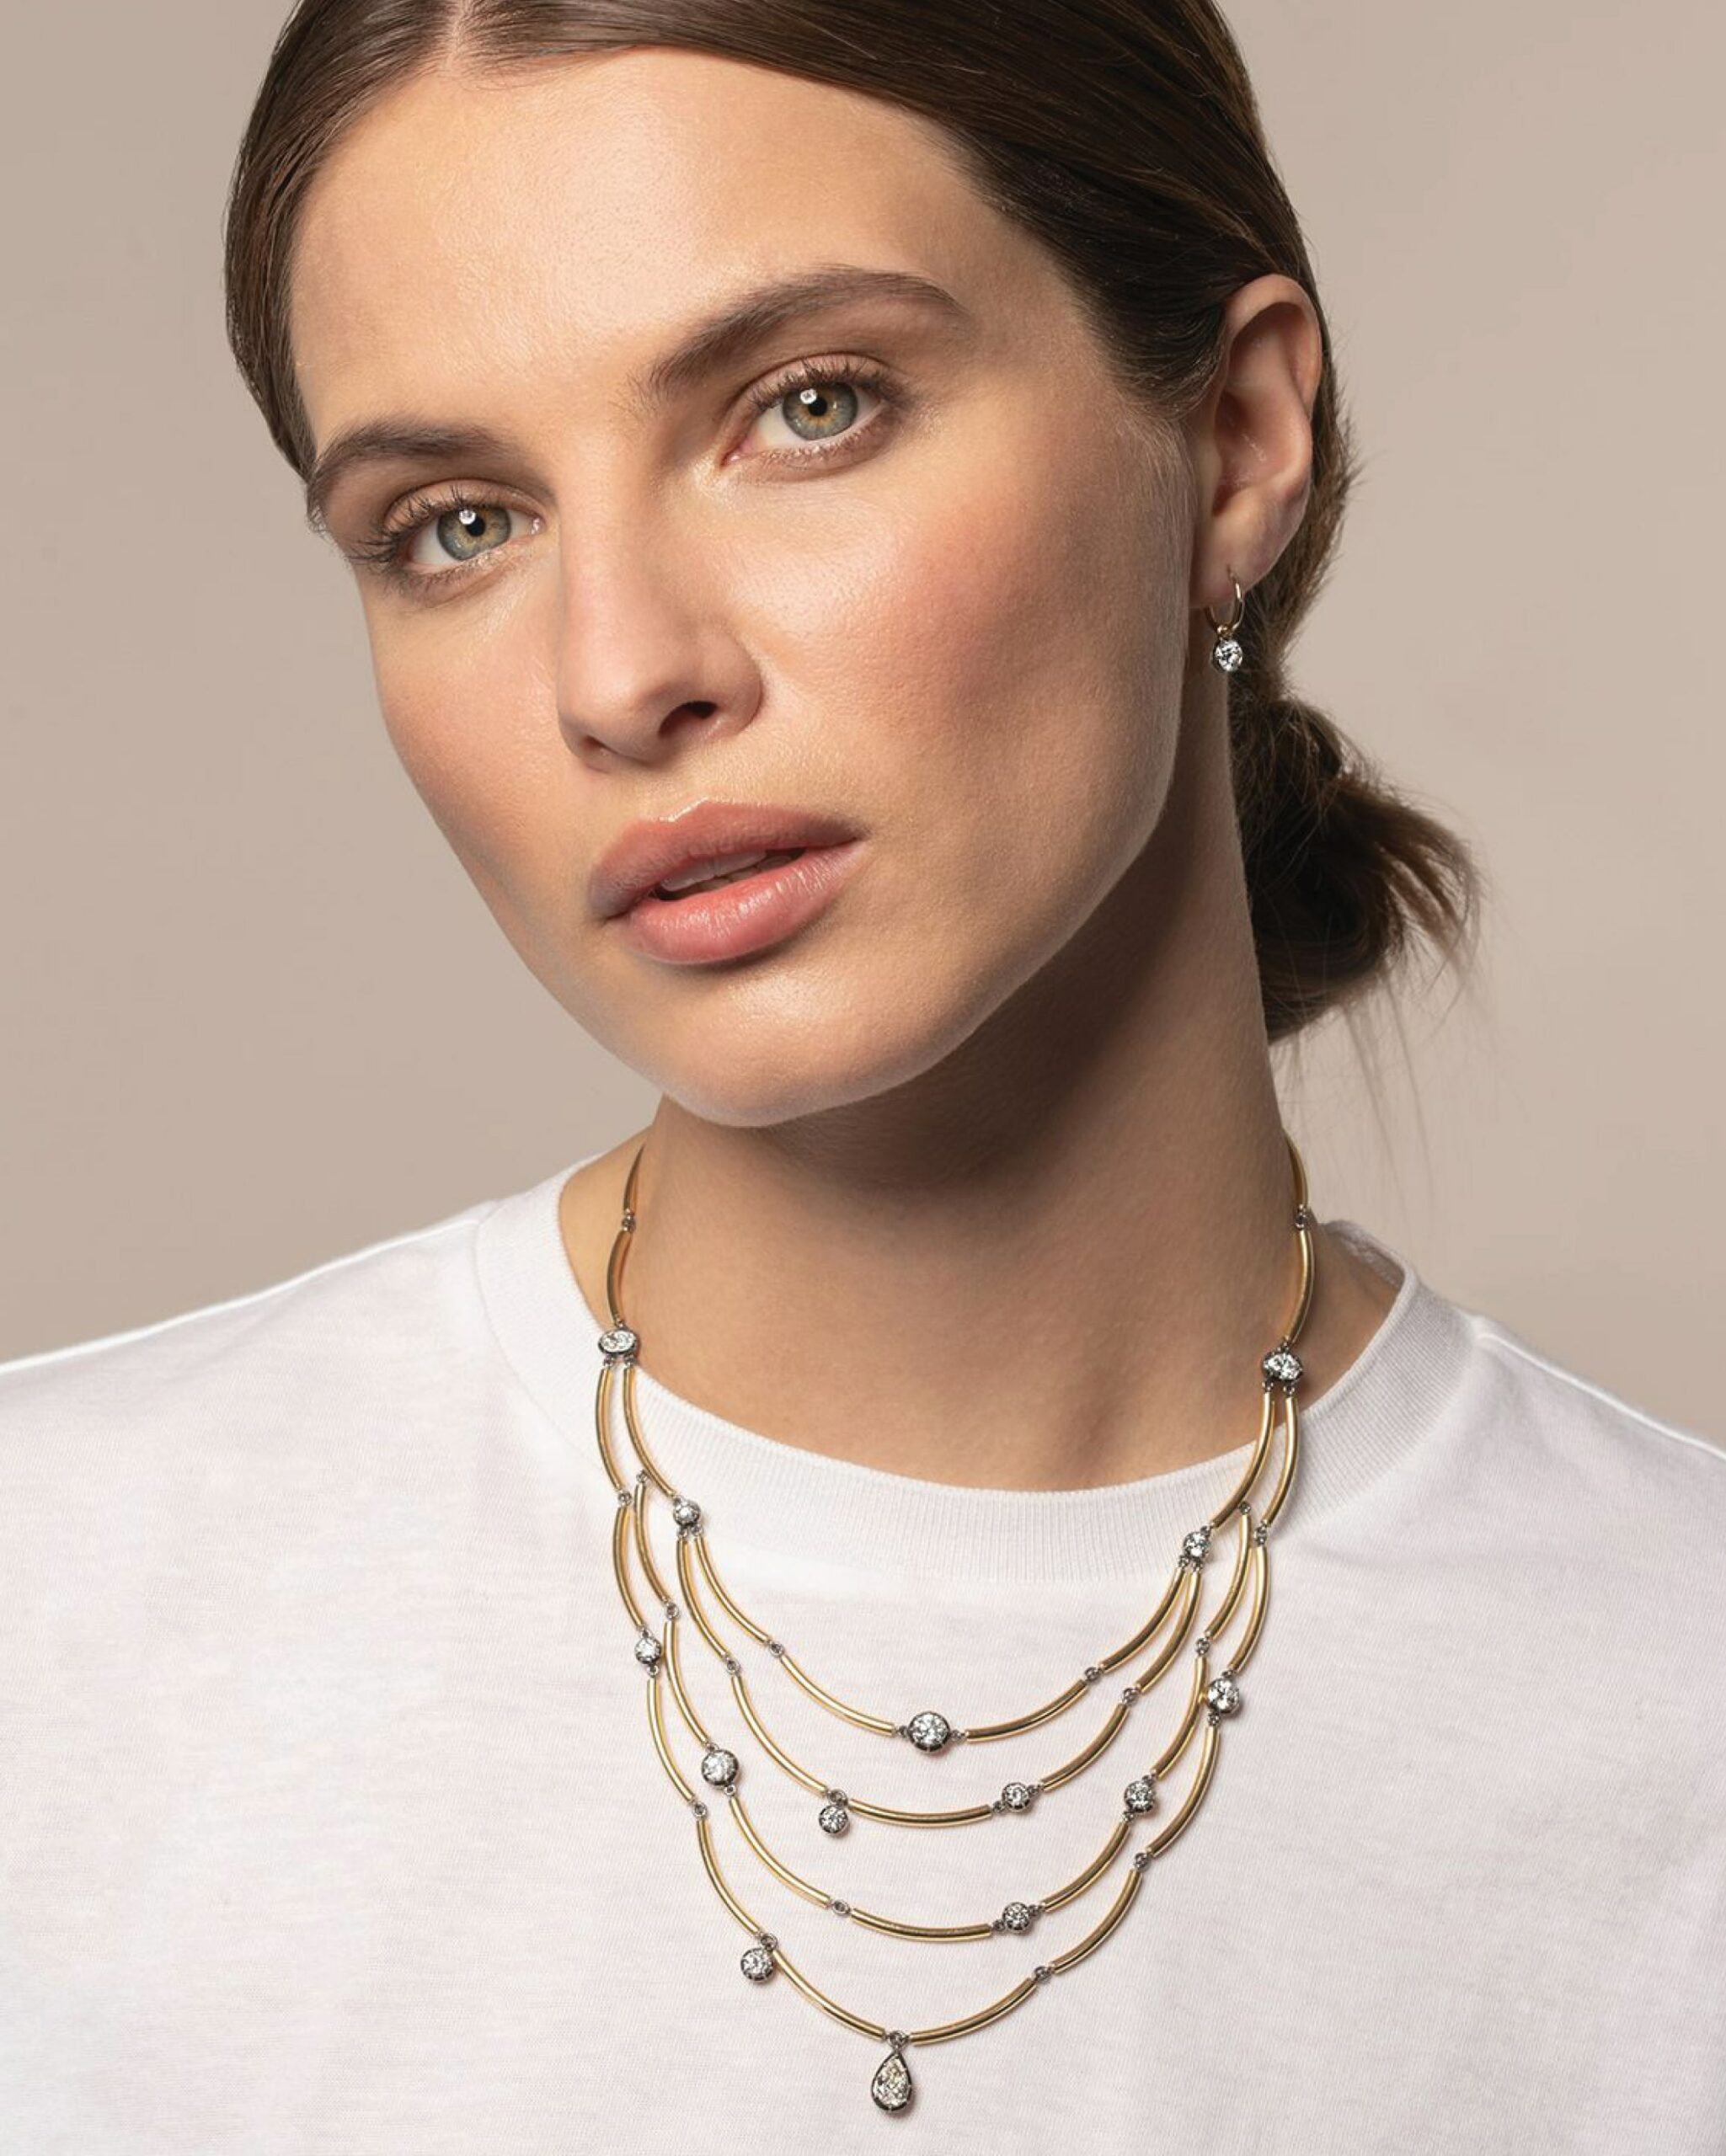 Chi Chi layered gold necklace from Jessica McCormack featuring several round cut diamonds across 4 strands